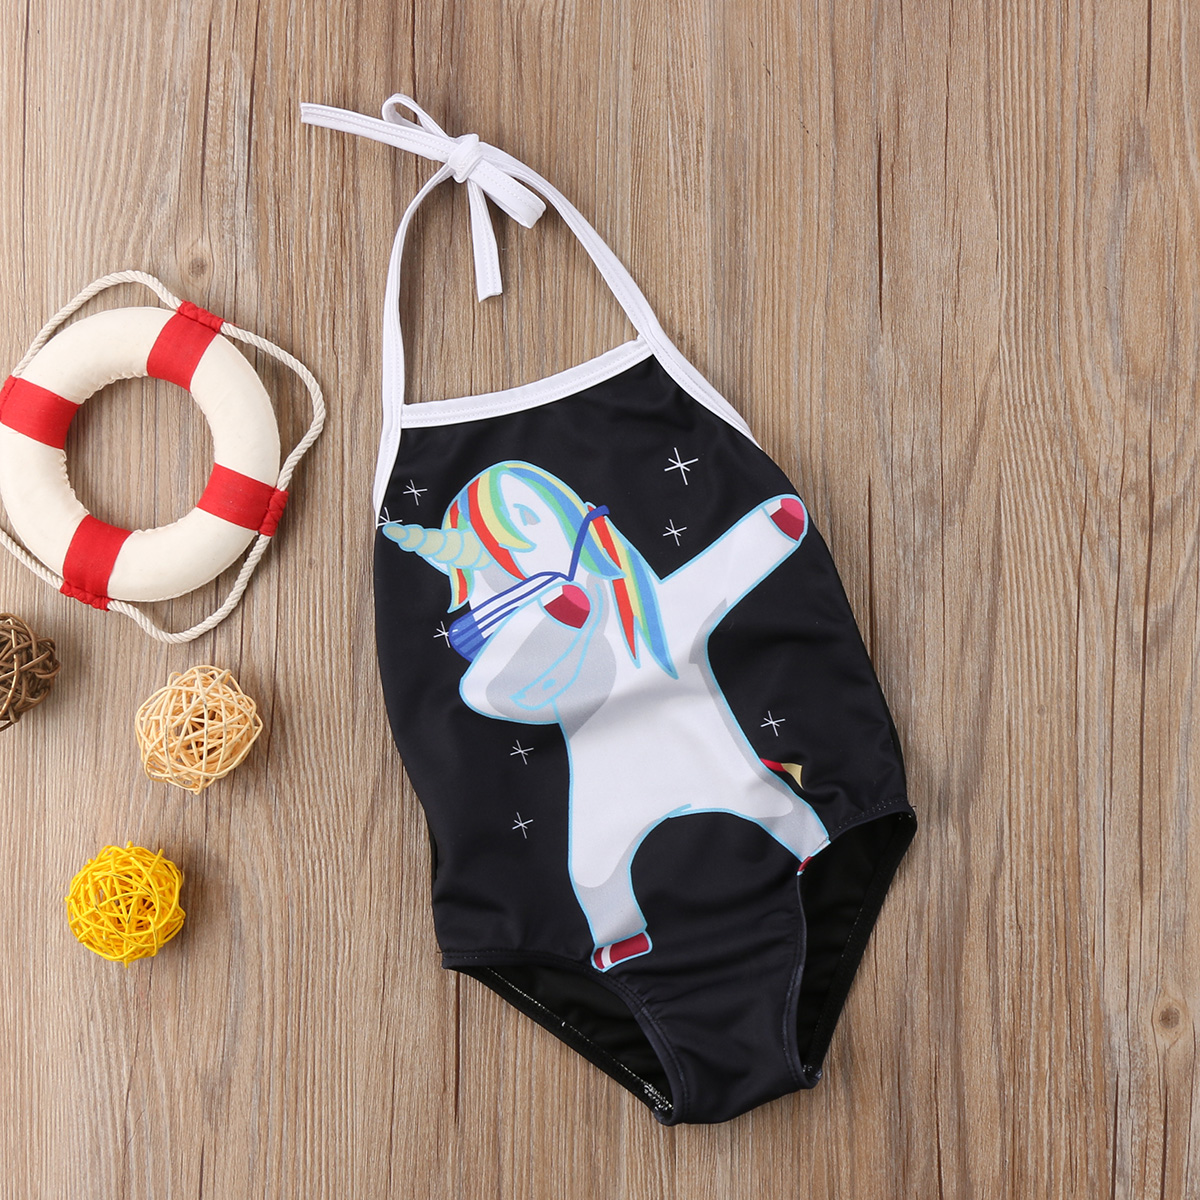 Cartoon Unicorn Baby Girls Swimwear One pieces Bodysuit for children Girls Swimsuit Beachwear Summer Bathing suit for girls